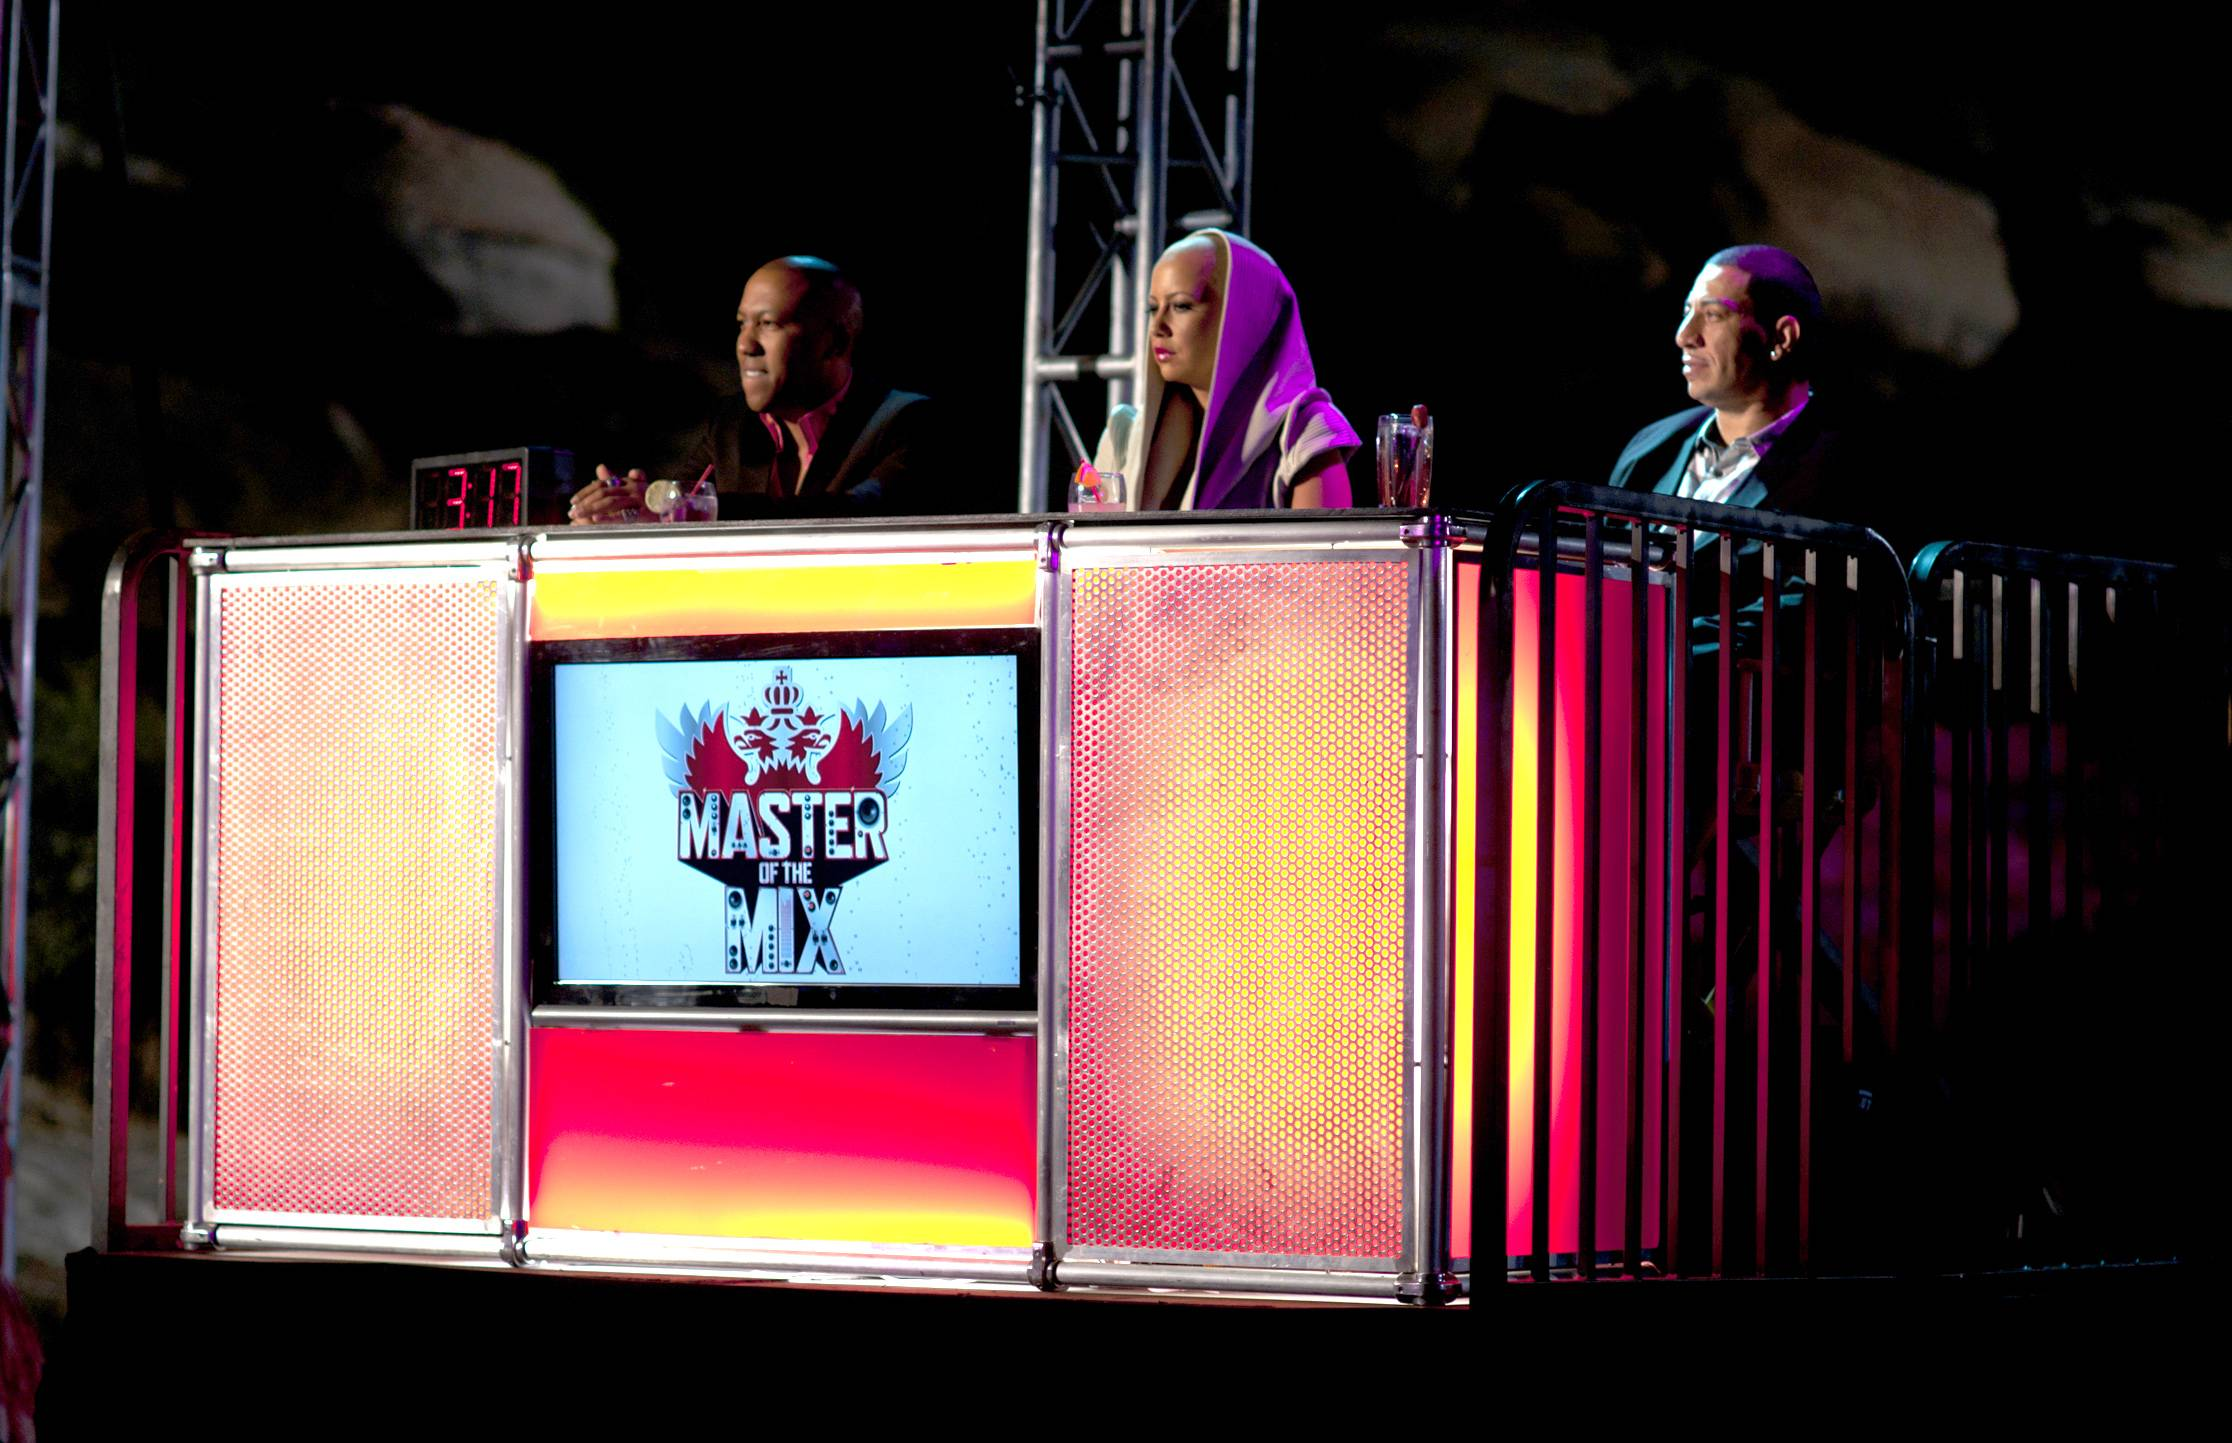 The Judges Are in Place - Ready to see who is set to rock the party and prove they are Master of the Mix. (Photo: Moses Mitchell/BET)